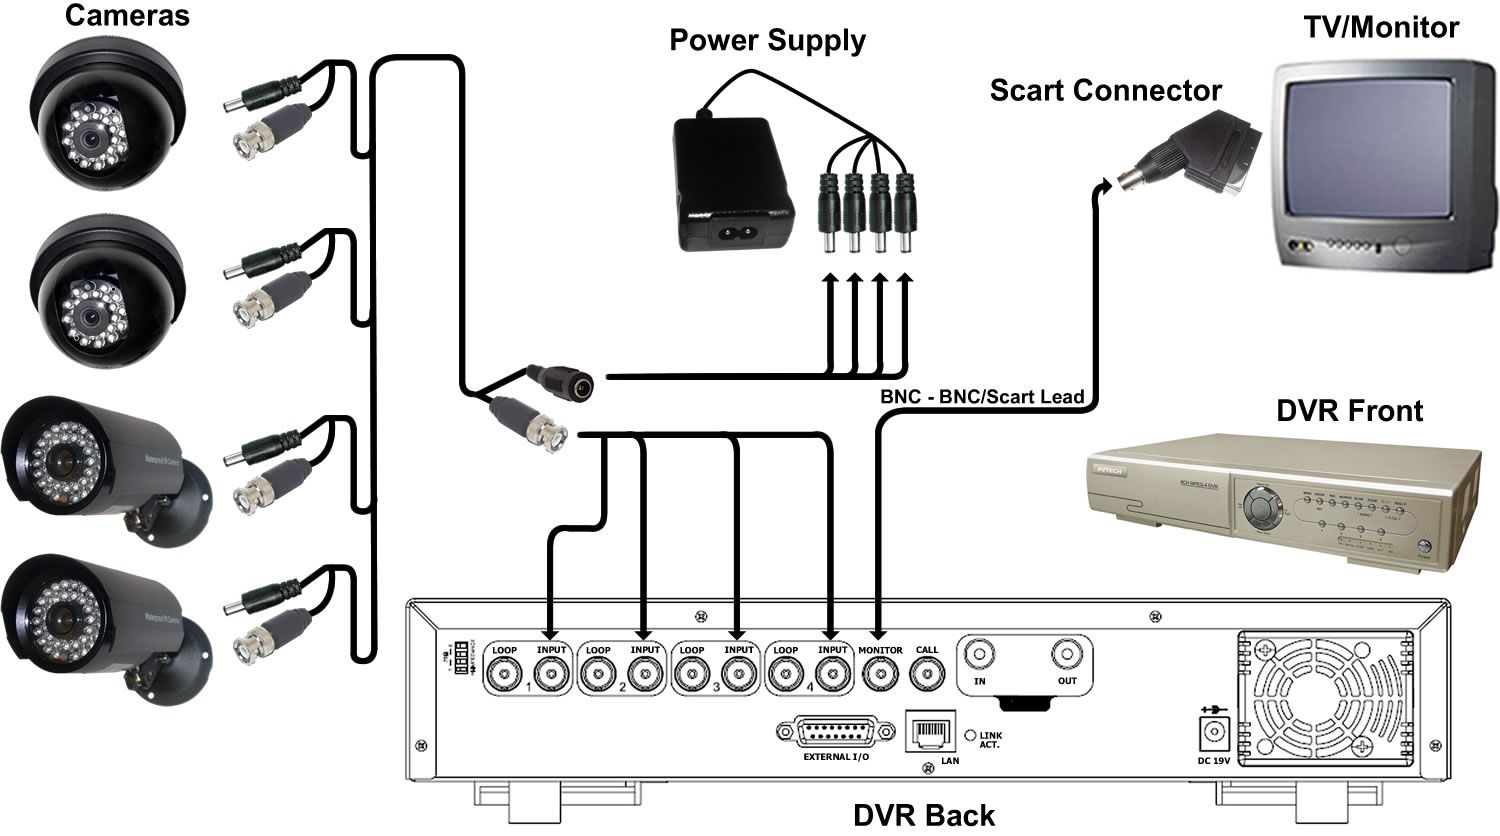 Cctv Wiring Schematic Experience Of Diagram Download The Mossberg 500 Pdf Or View Online Installations Basic Installation Guide Rh Pinterest Com Camera